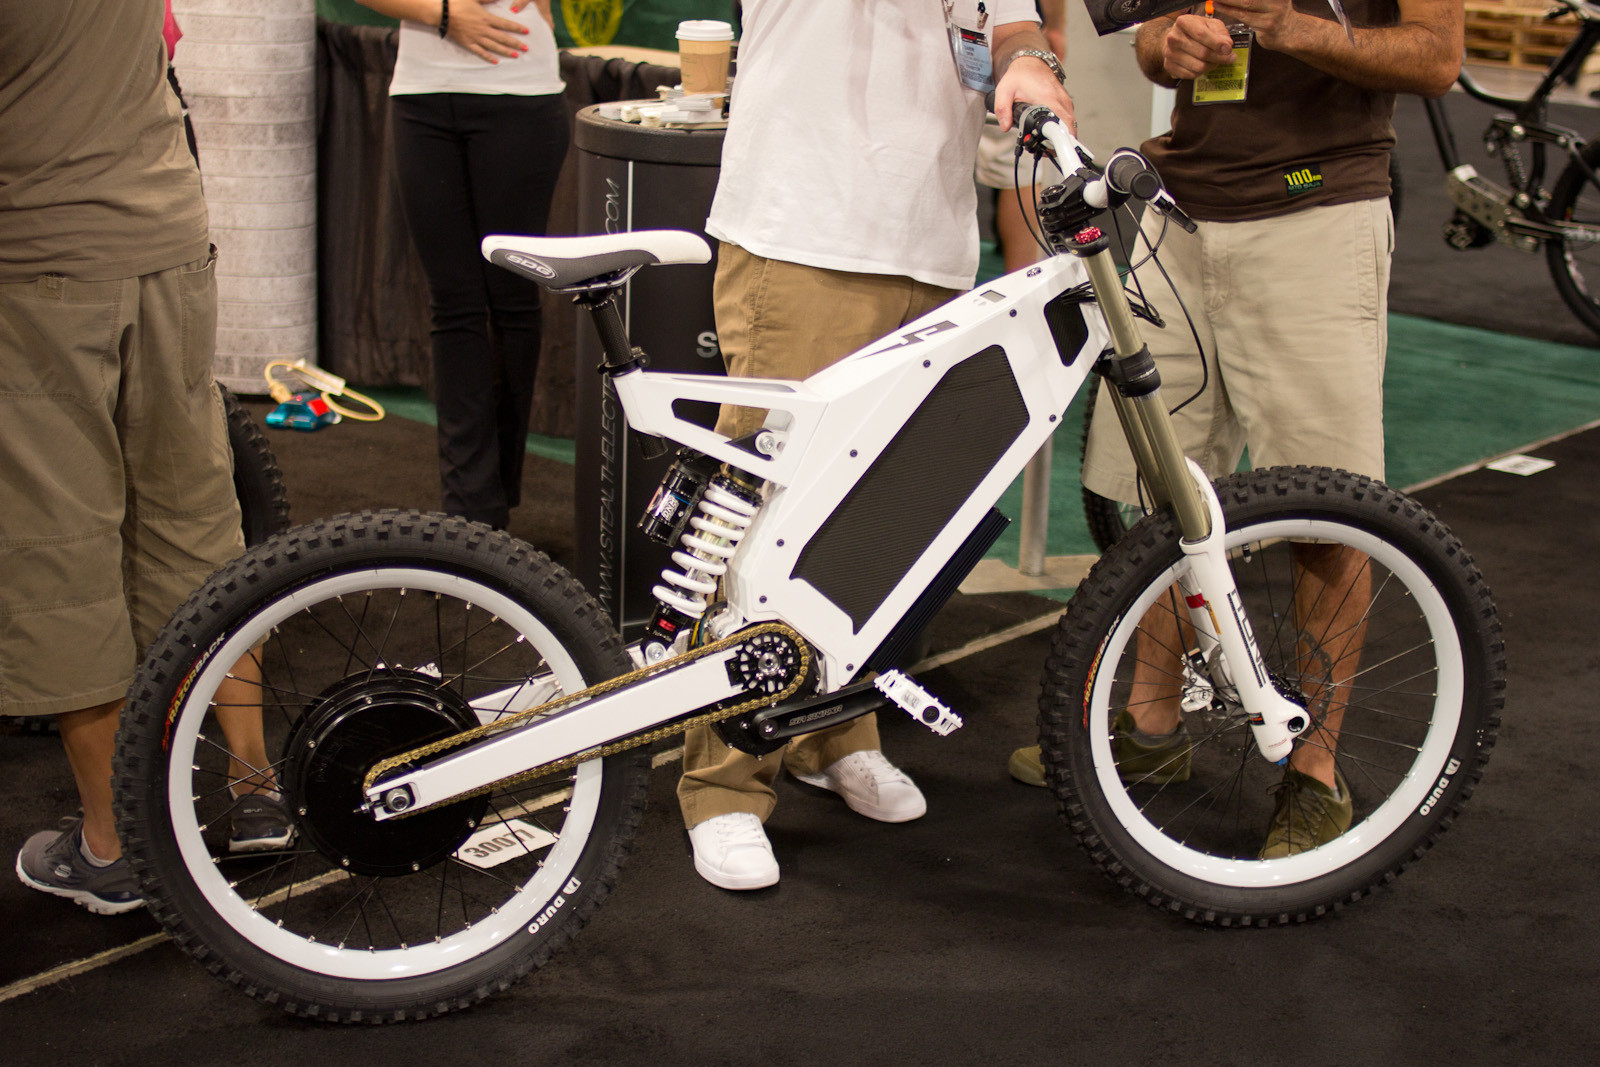 Robo Cop's E-Bike - Random, Wacky, and Weird from Interbike 2012  - Mountain Biking Pictures - Vital MTB